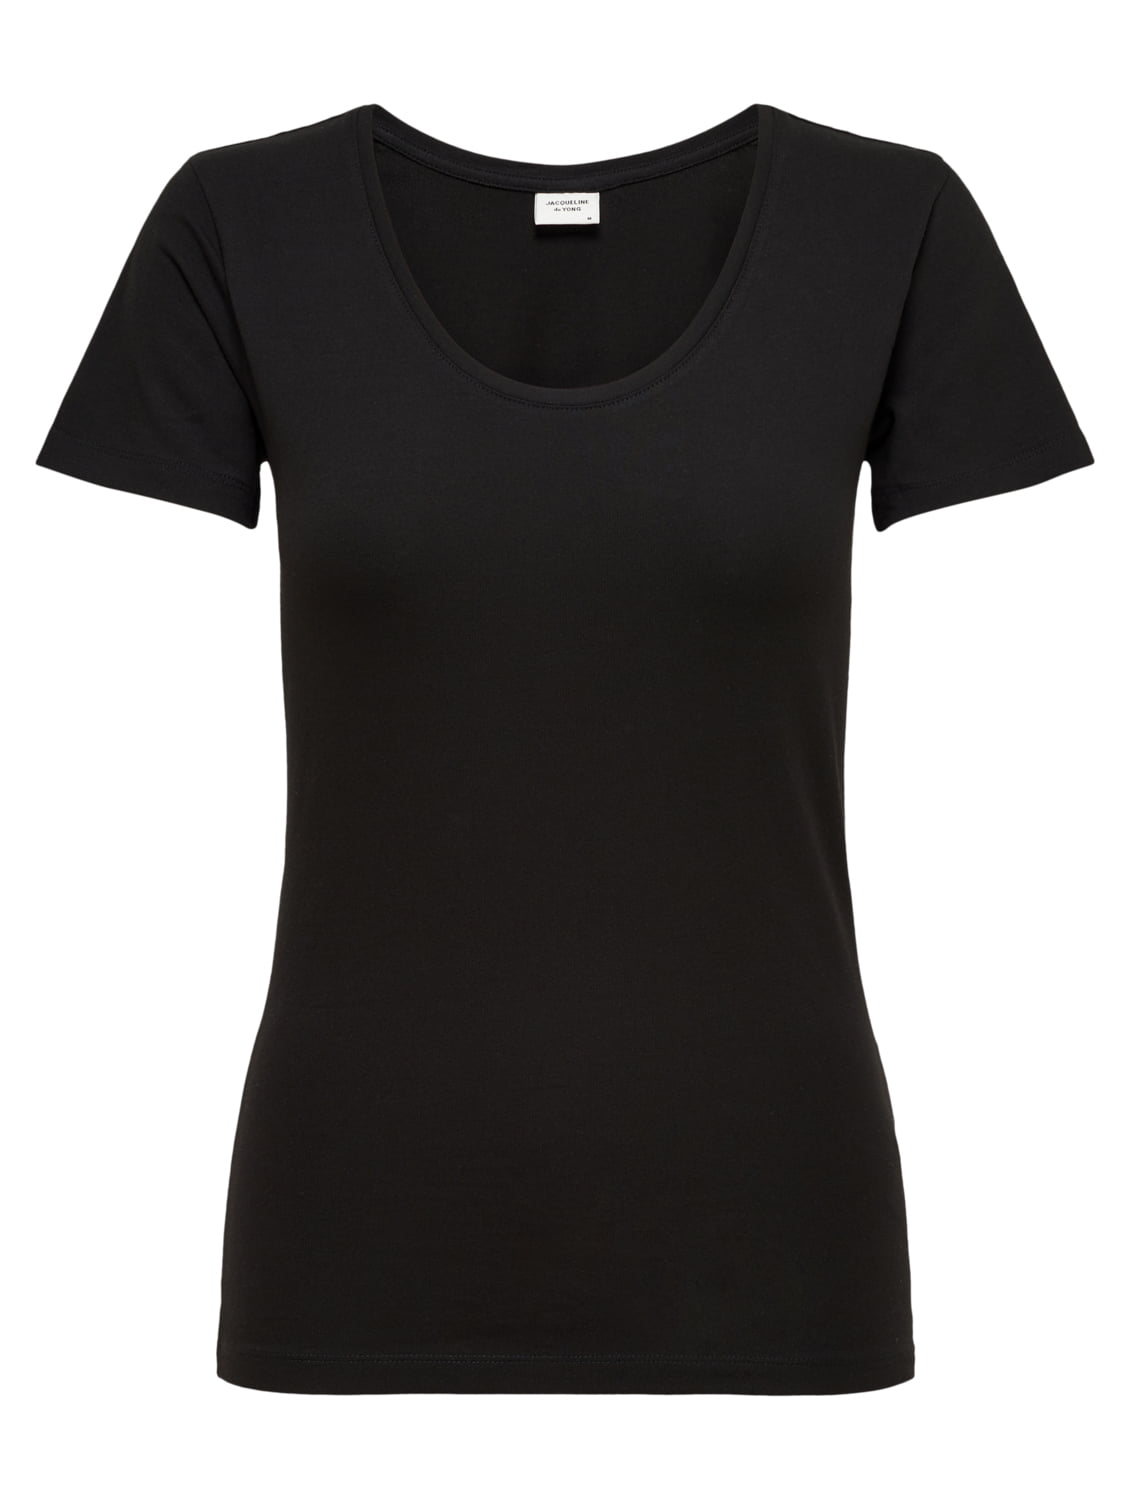 Image of   Ava S/S top